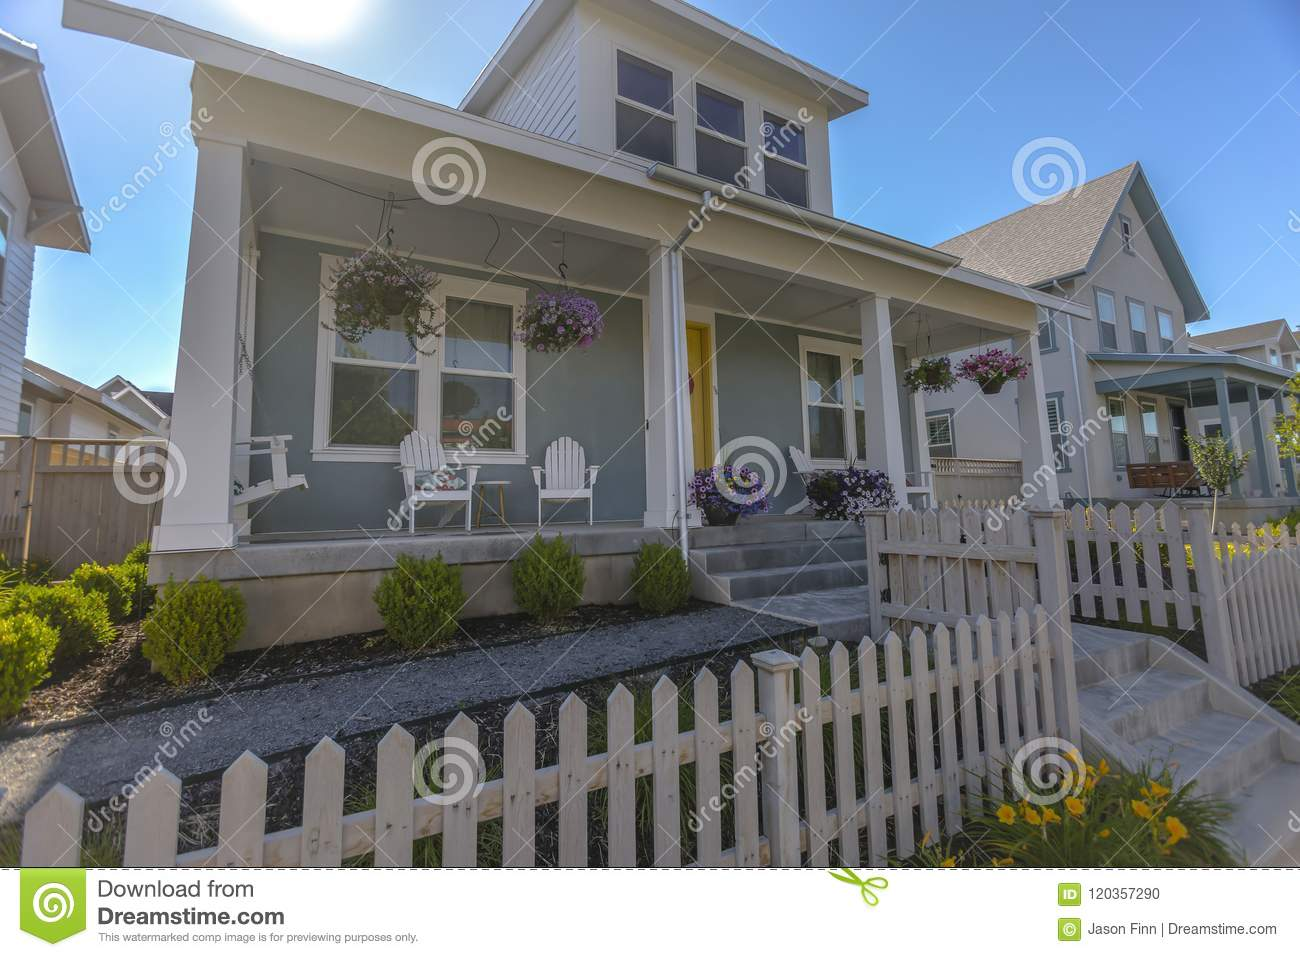 White Fences In Small Family Home Stock Photo Image Of Exterior